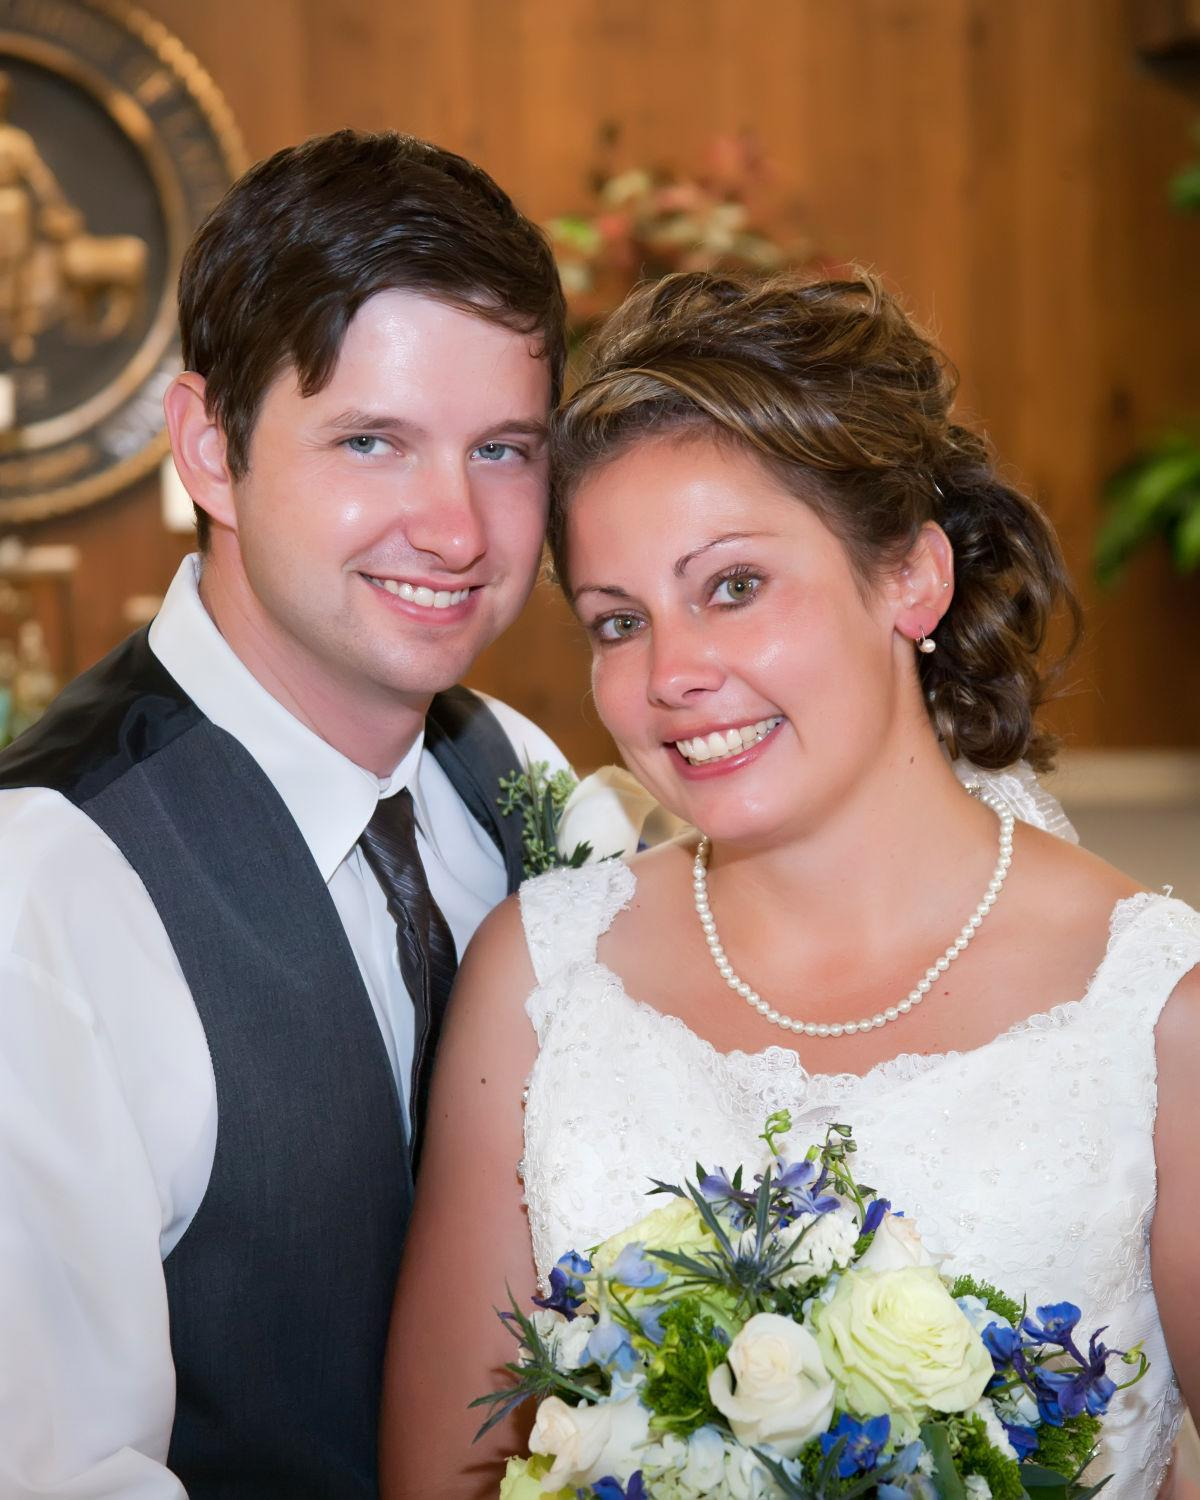 Anthony and Megan Hargett